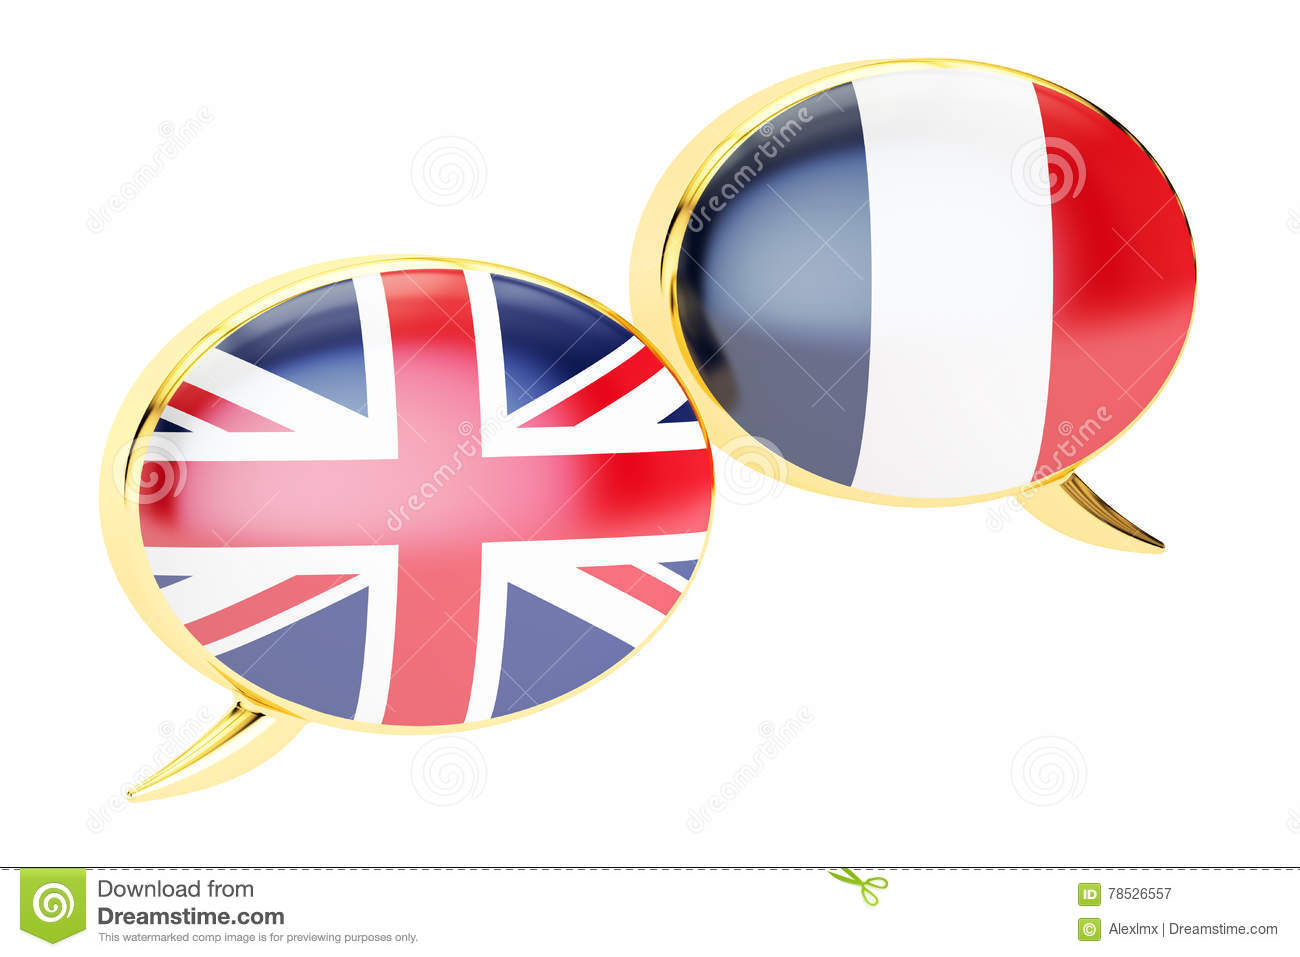 English-French Conversation Concept, 3D Rendering Stock Illustration